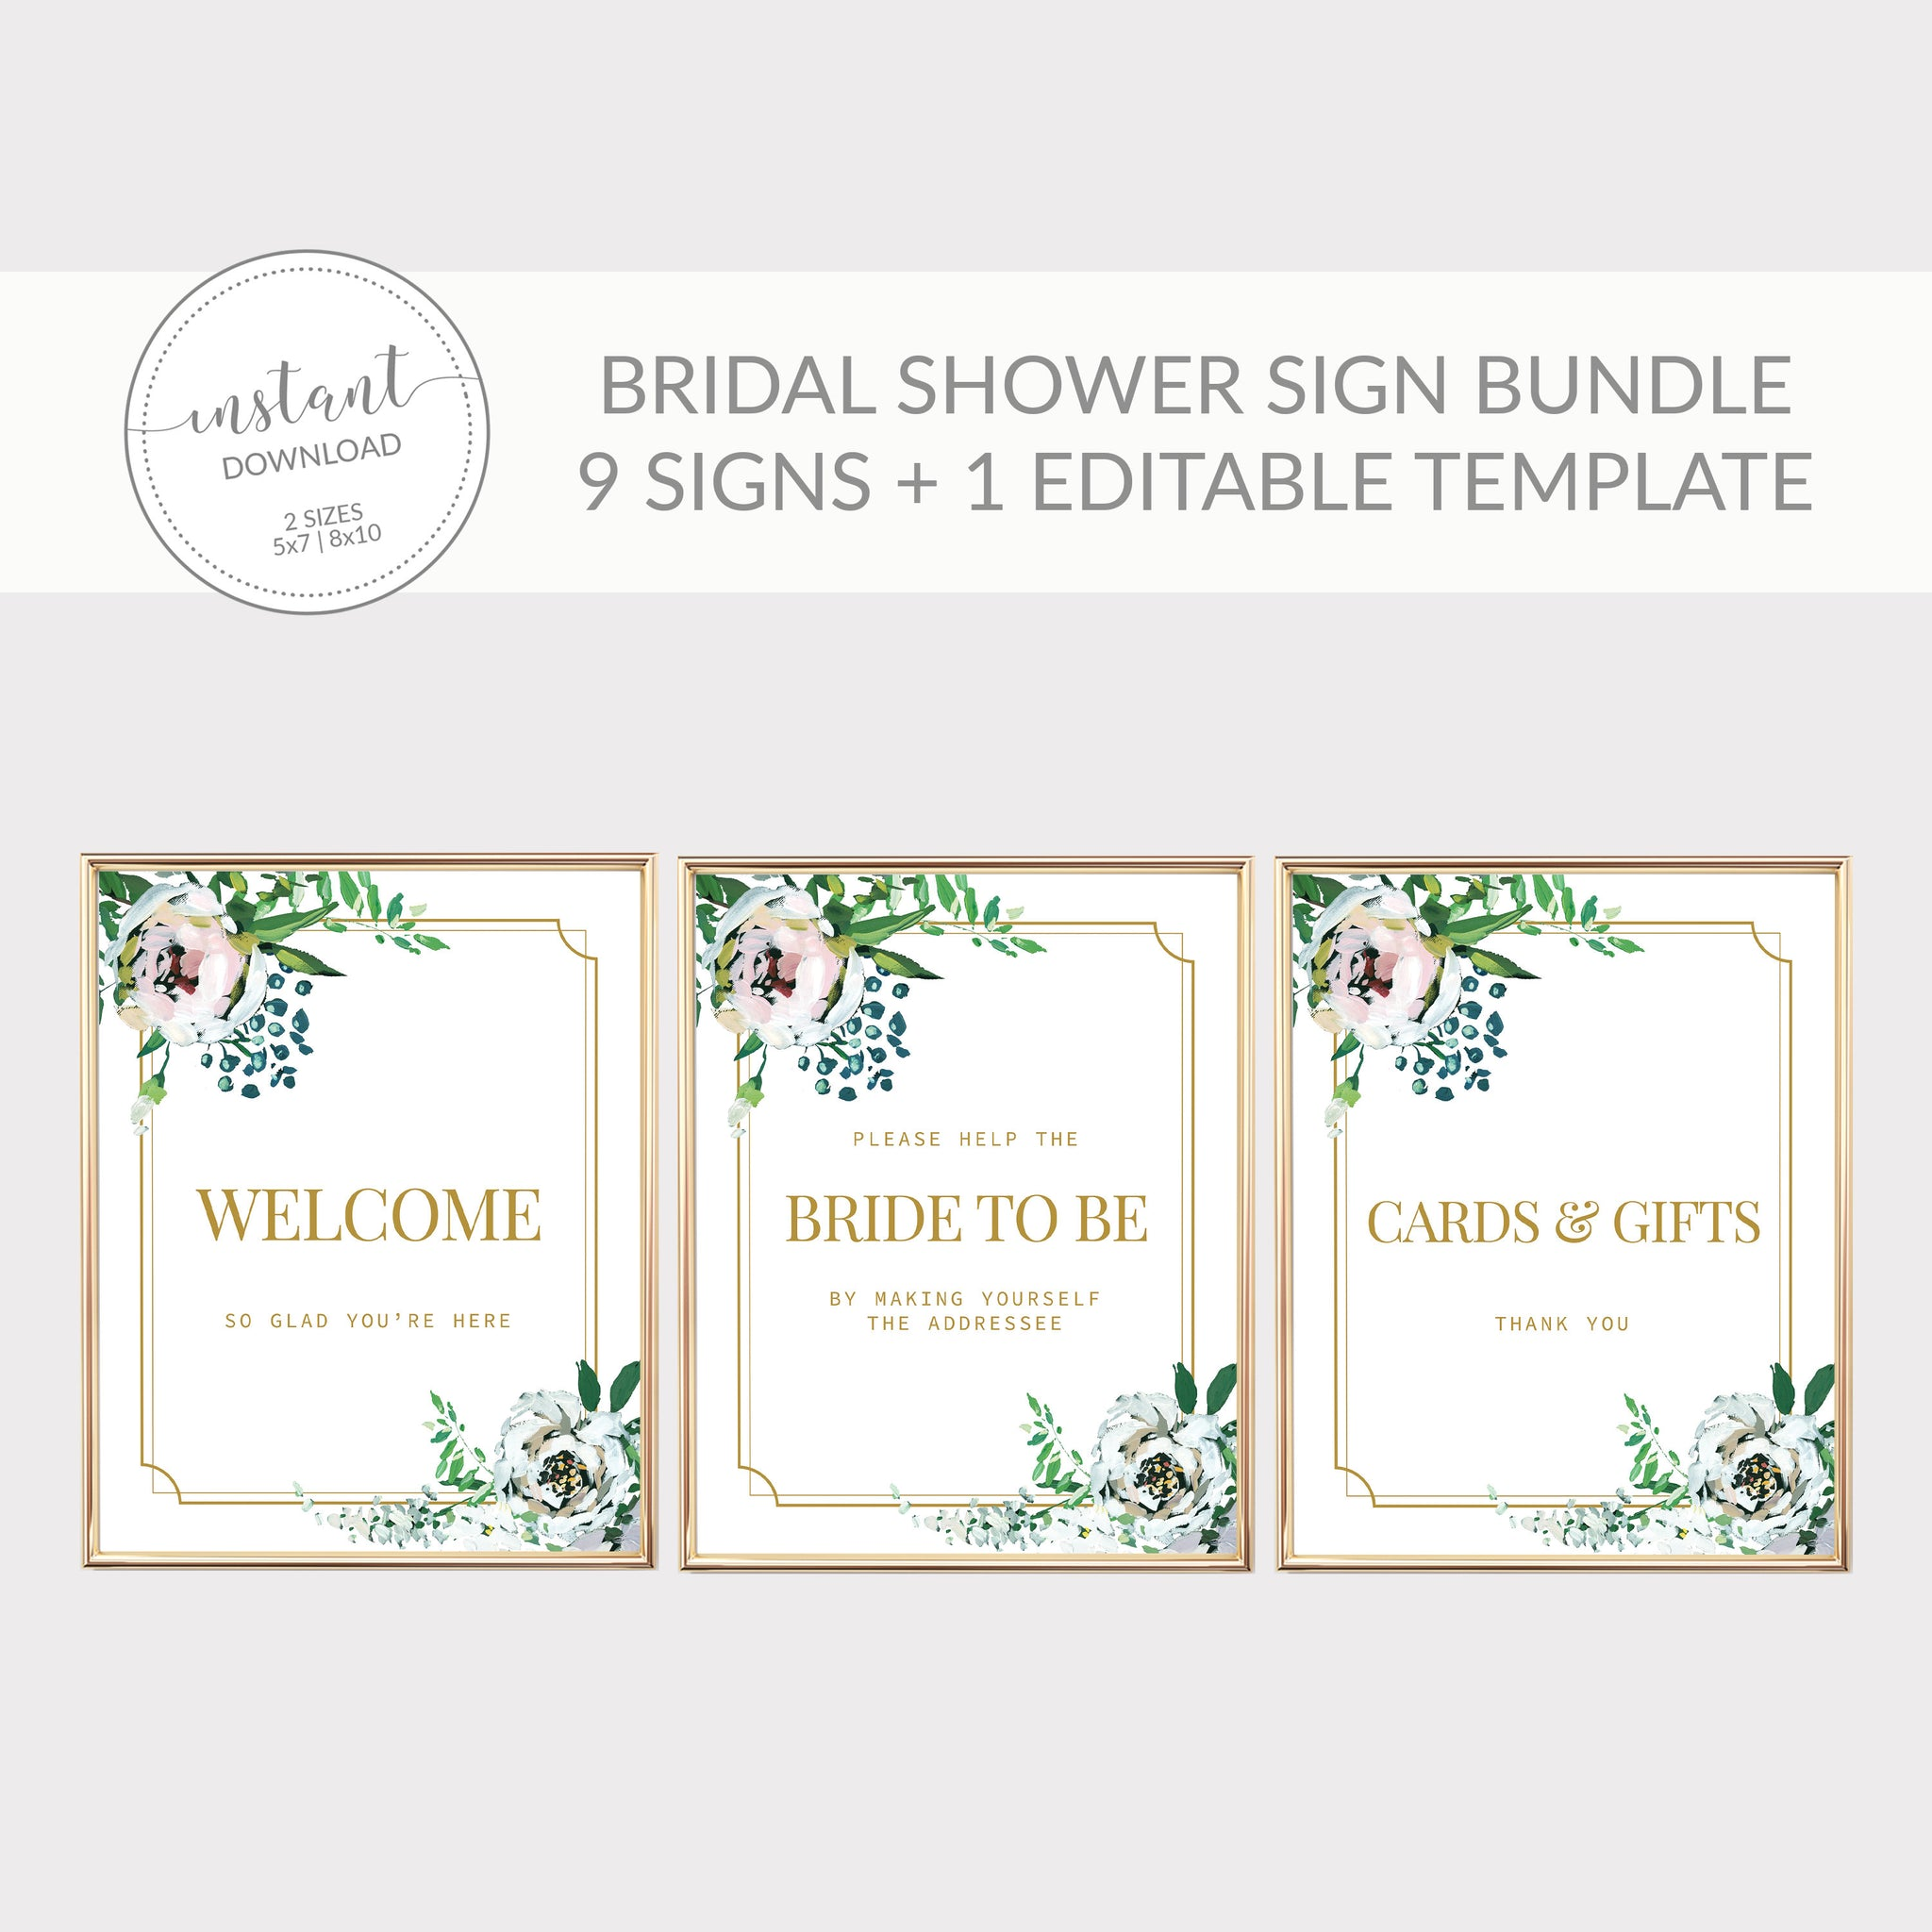 Blush Floral Greenery Printable Bridal Shower Sign Bundle, INSTANT DOWNLOAD, Editable Bridal Shower Sign Template, Decorations - BFG100 - @PlumPolkaDot